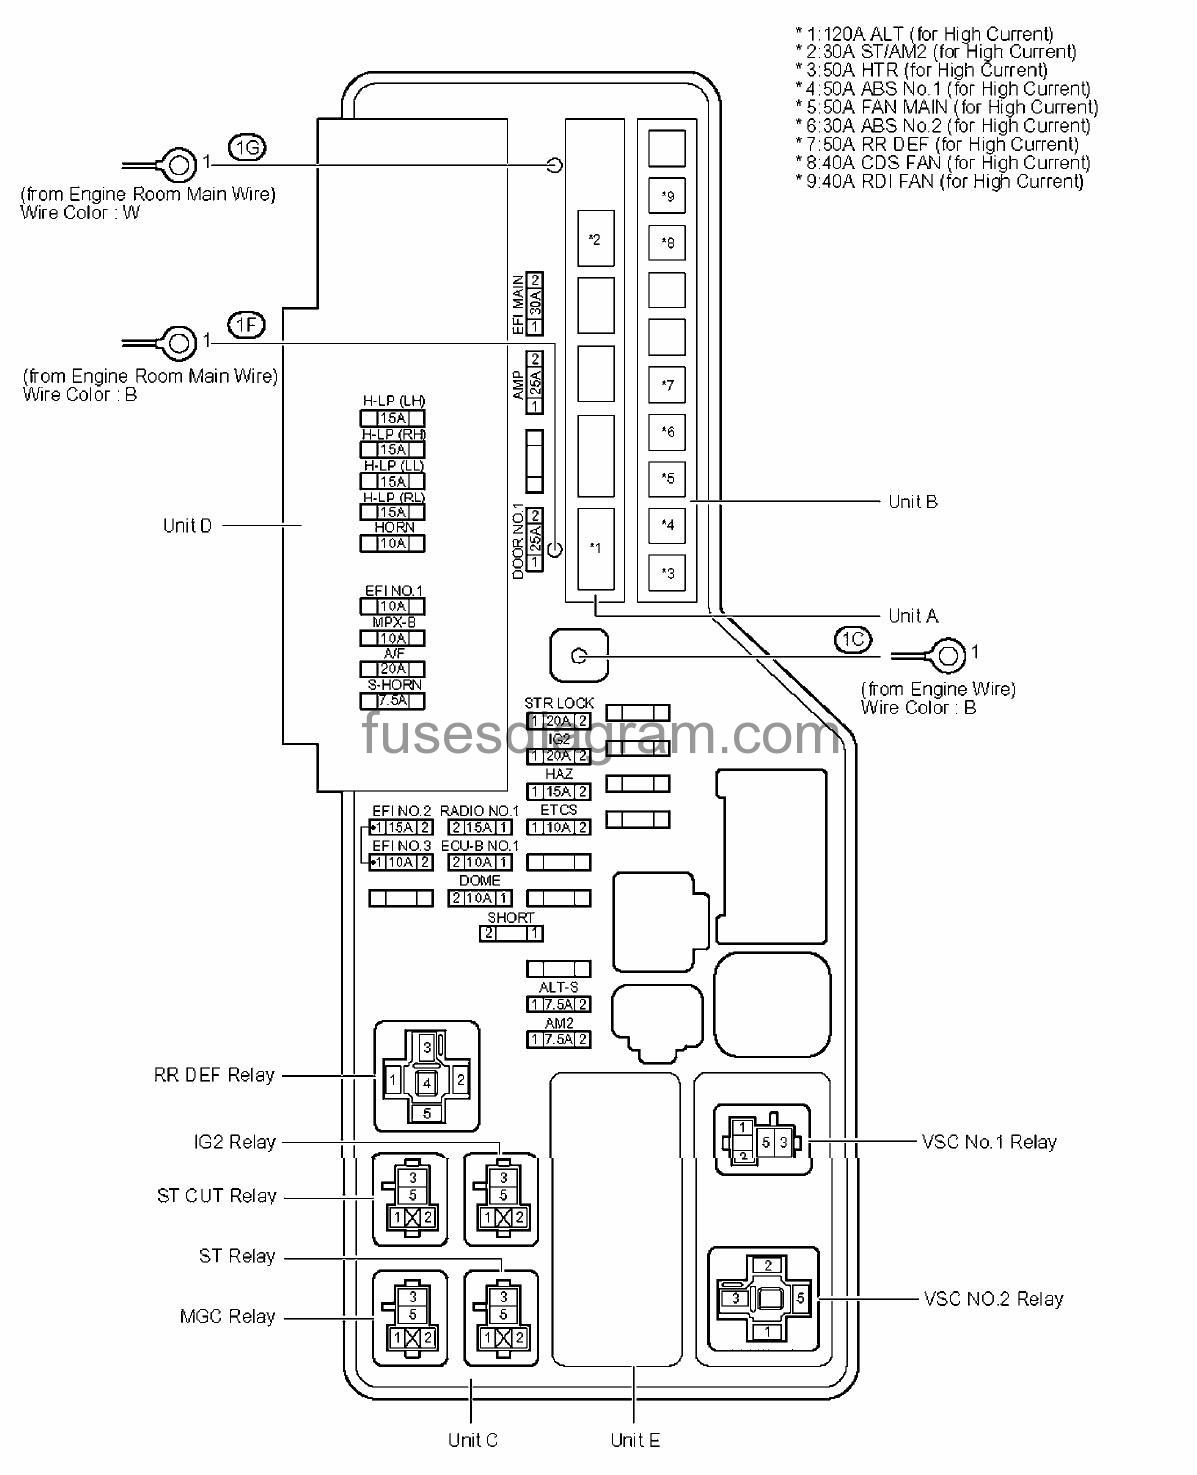 02 Camry Fuse Box Schema Wiring Diagram Schematics 2006 Toyota Camry Fuse  Box Diagram 2008 Toyota Camry Fuse Box Location